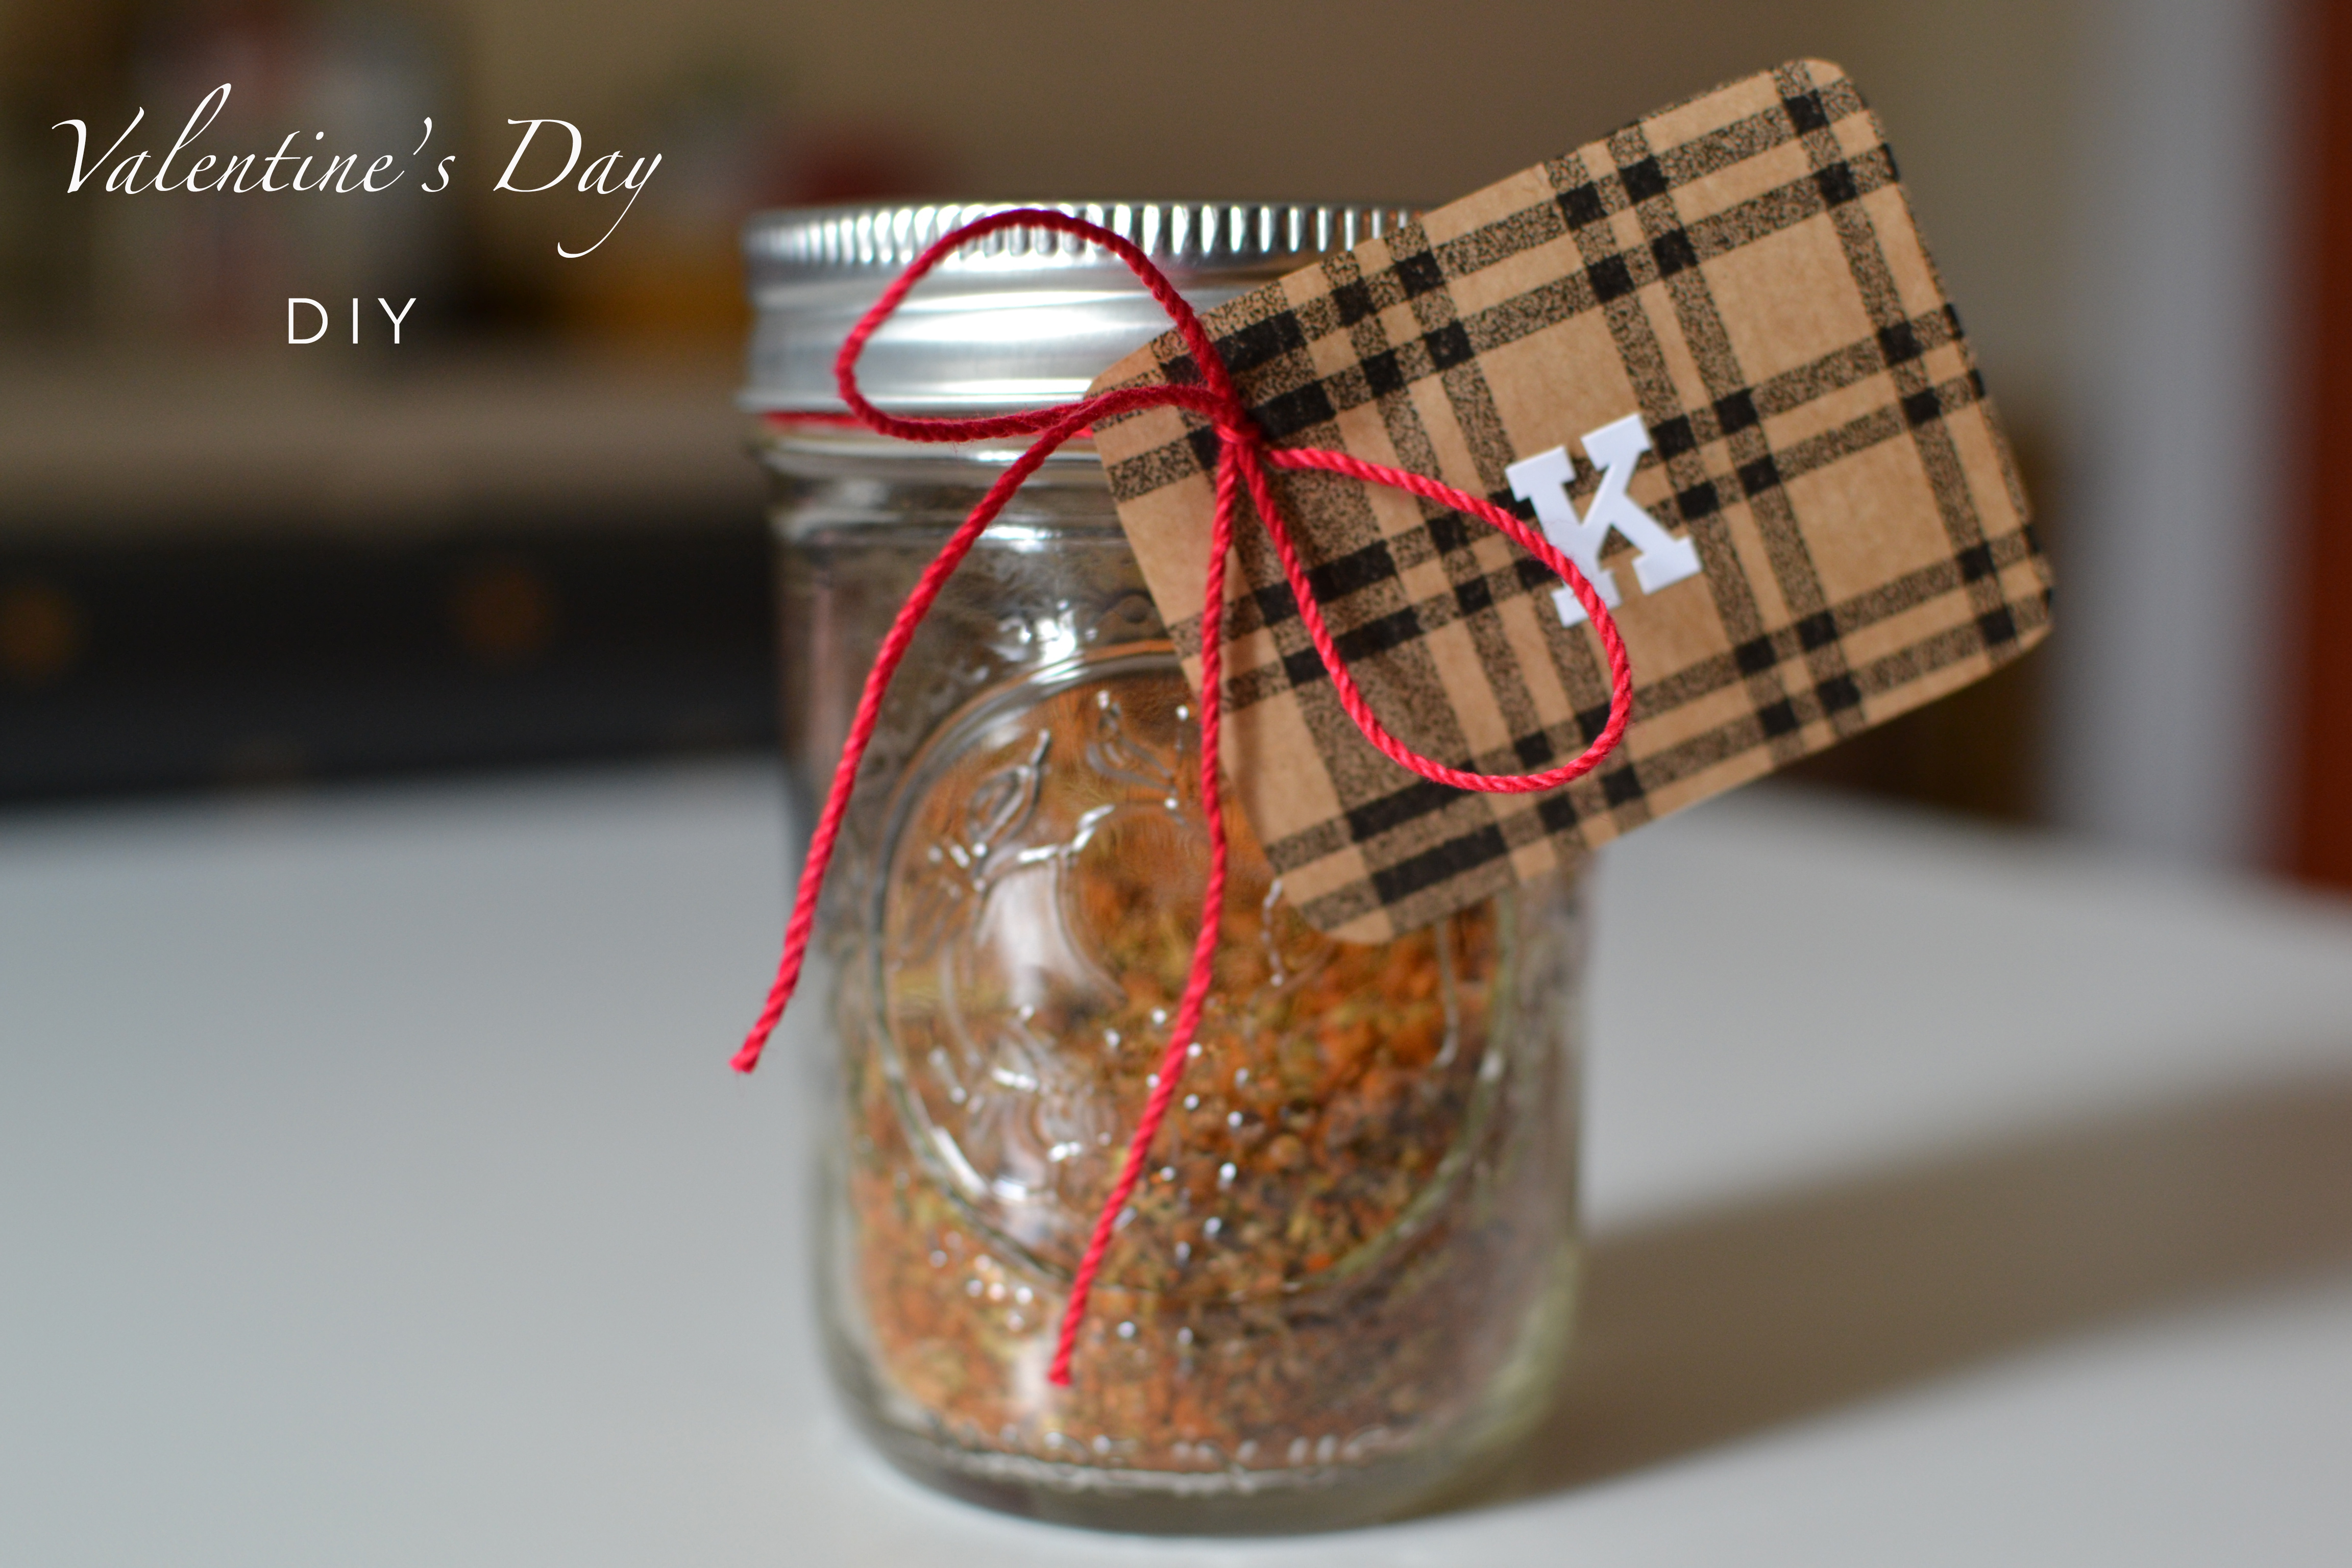 Paleo valentine s day meal ideas - Grab You Craft Supplies And Make Something Together It Doesn T Have To Be Something Too Complex Why Not Try These Easy Diy Spice Rubs From My Christmas